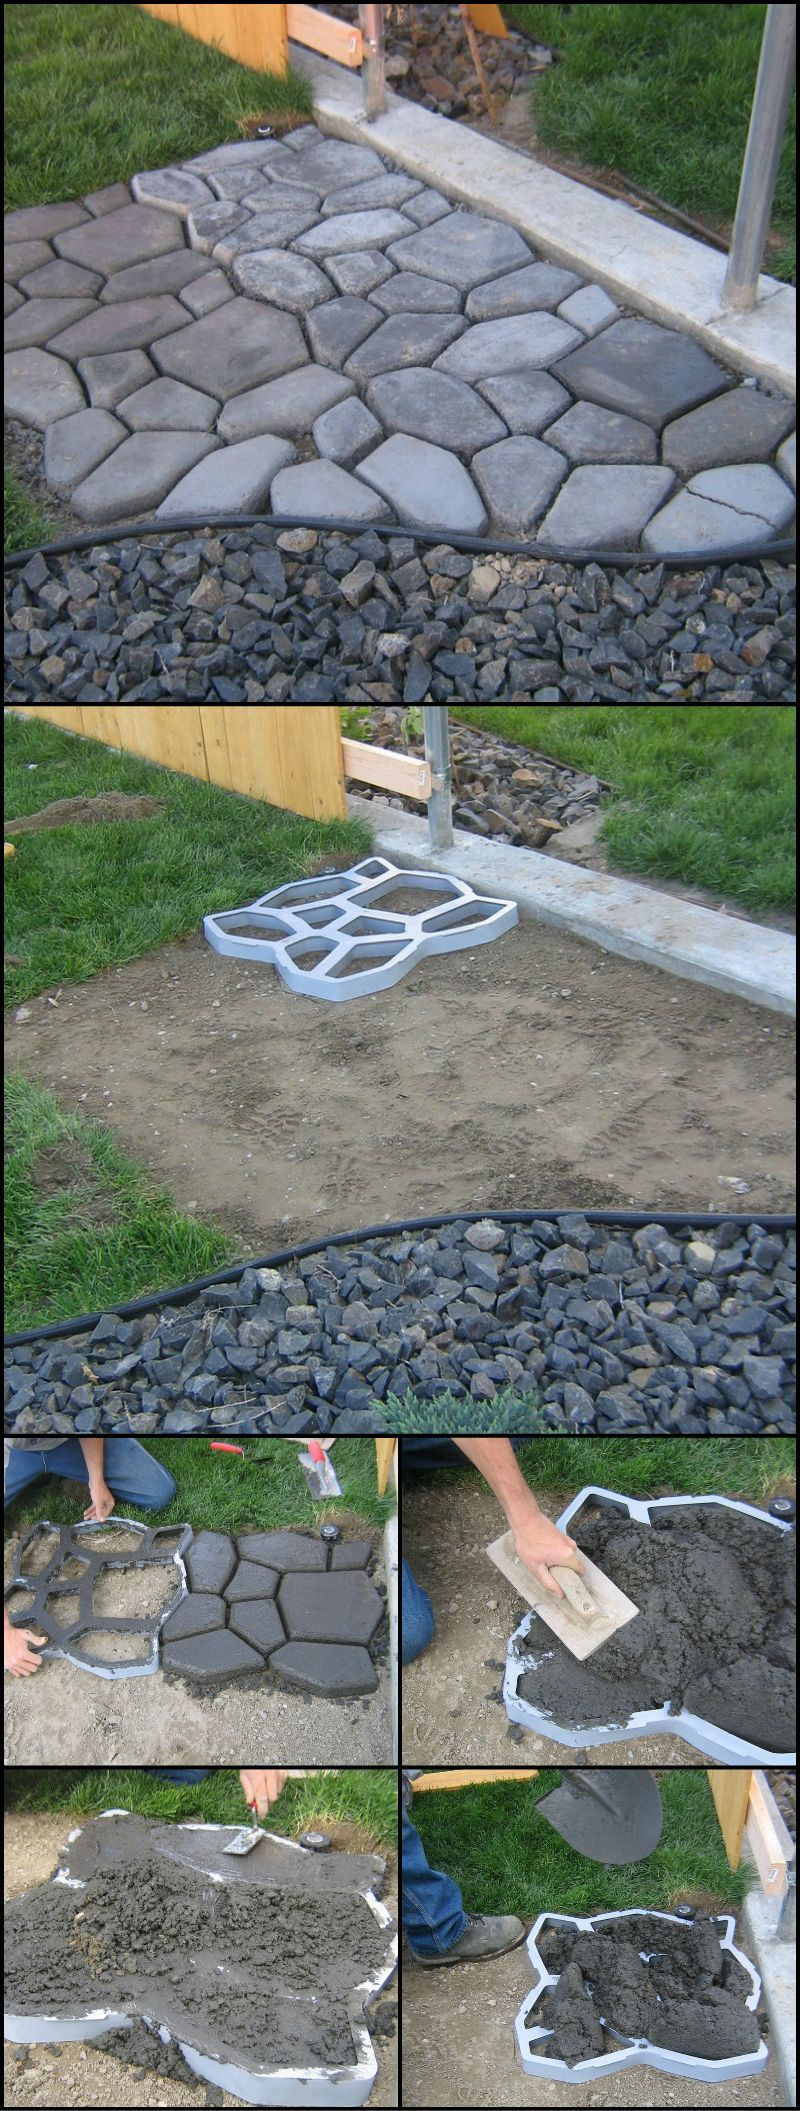 How To Make Your Own Cobble Stone Path Http://theownerbuildernetwork.co/